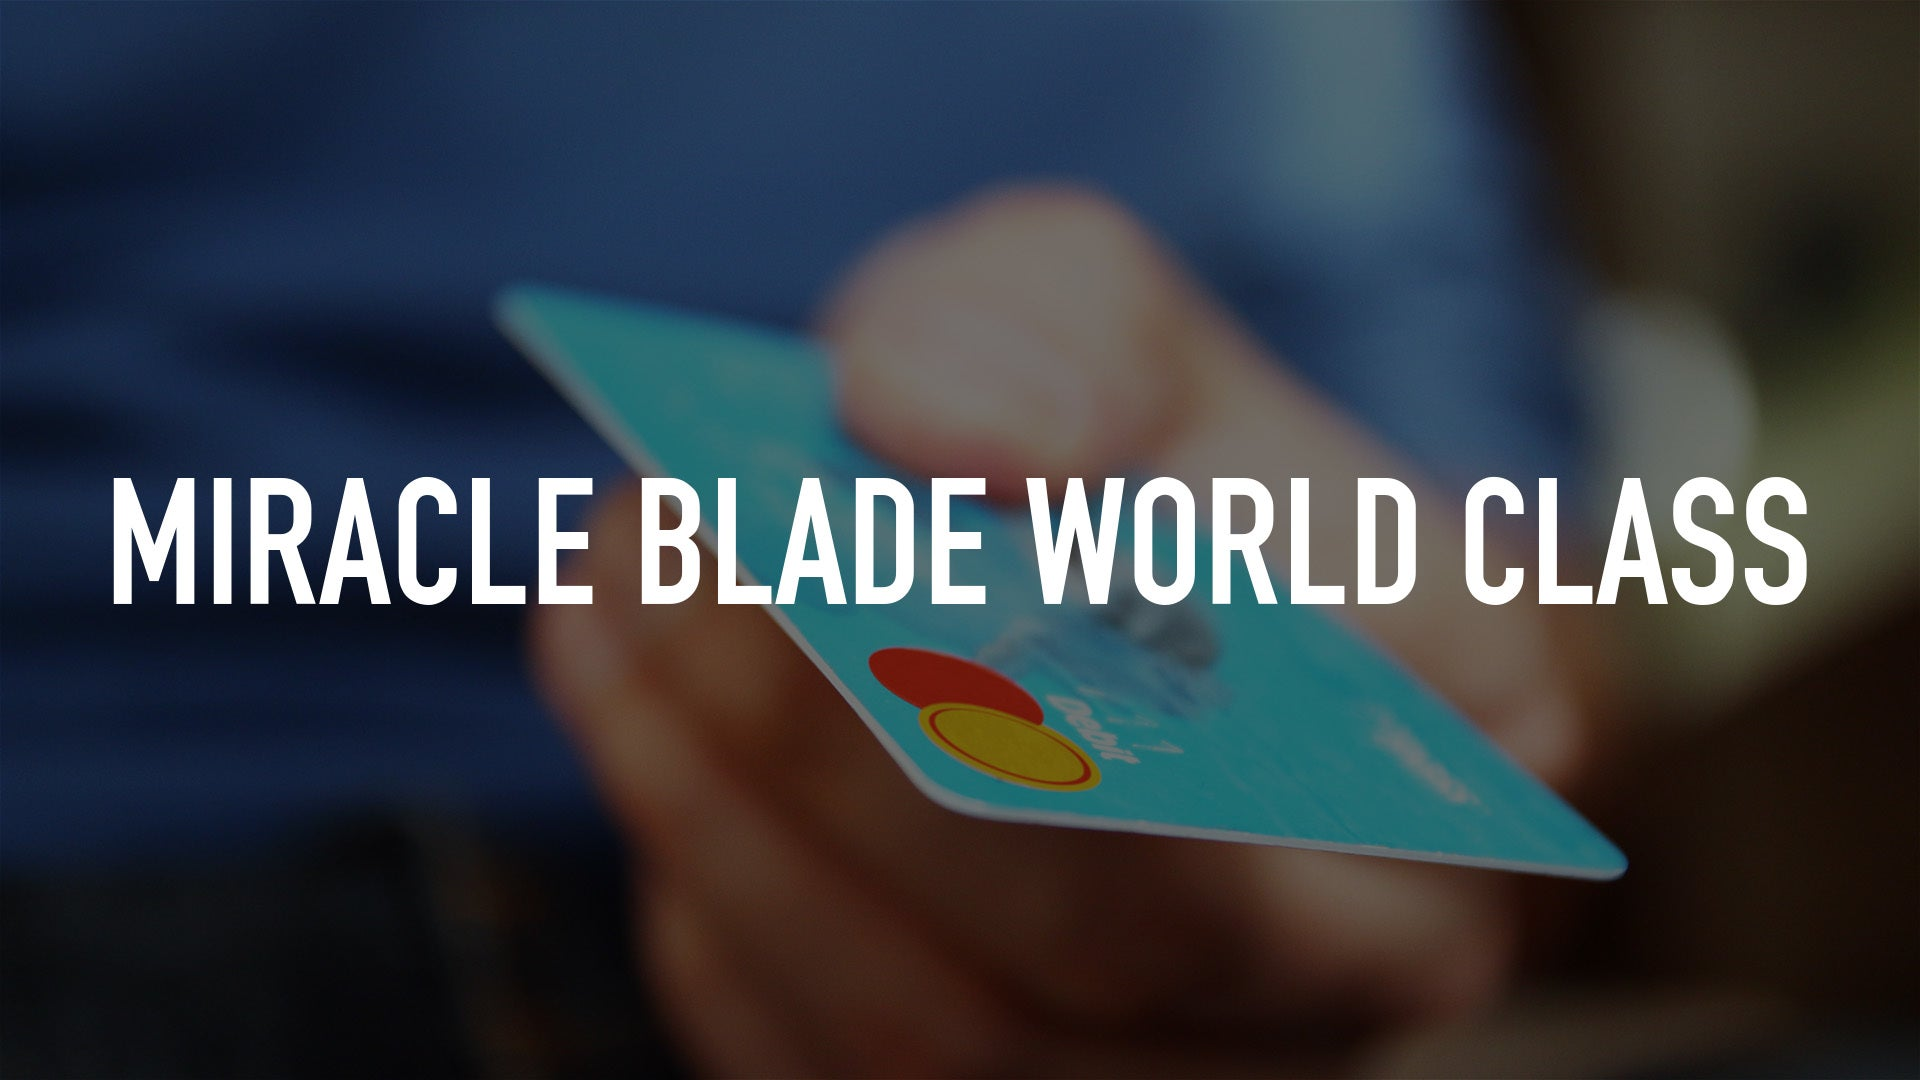 Miracle Blade World Class